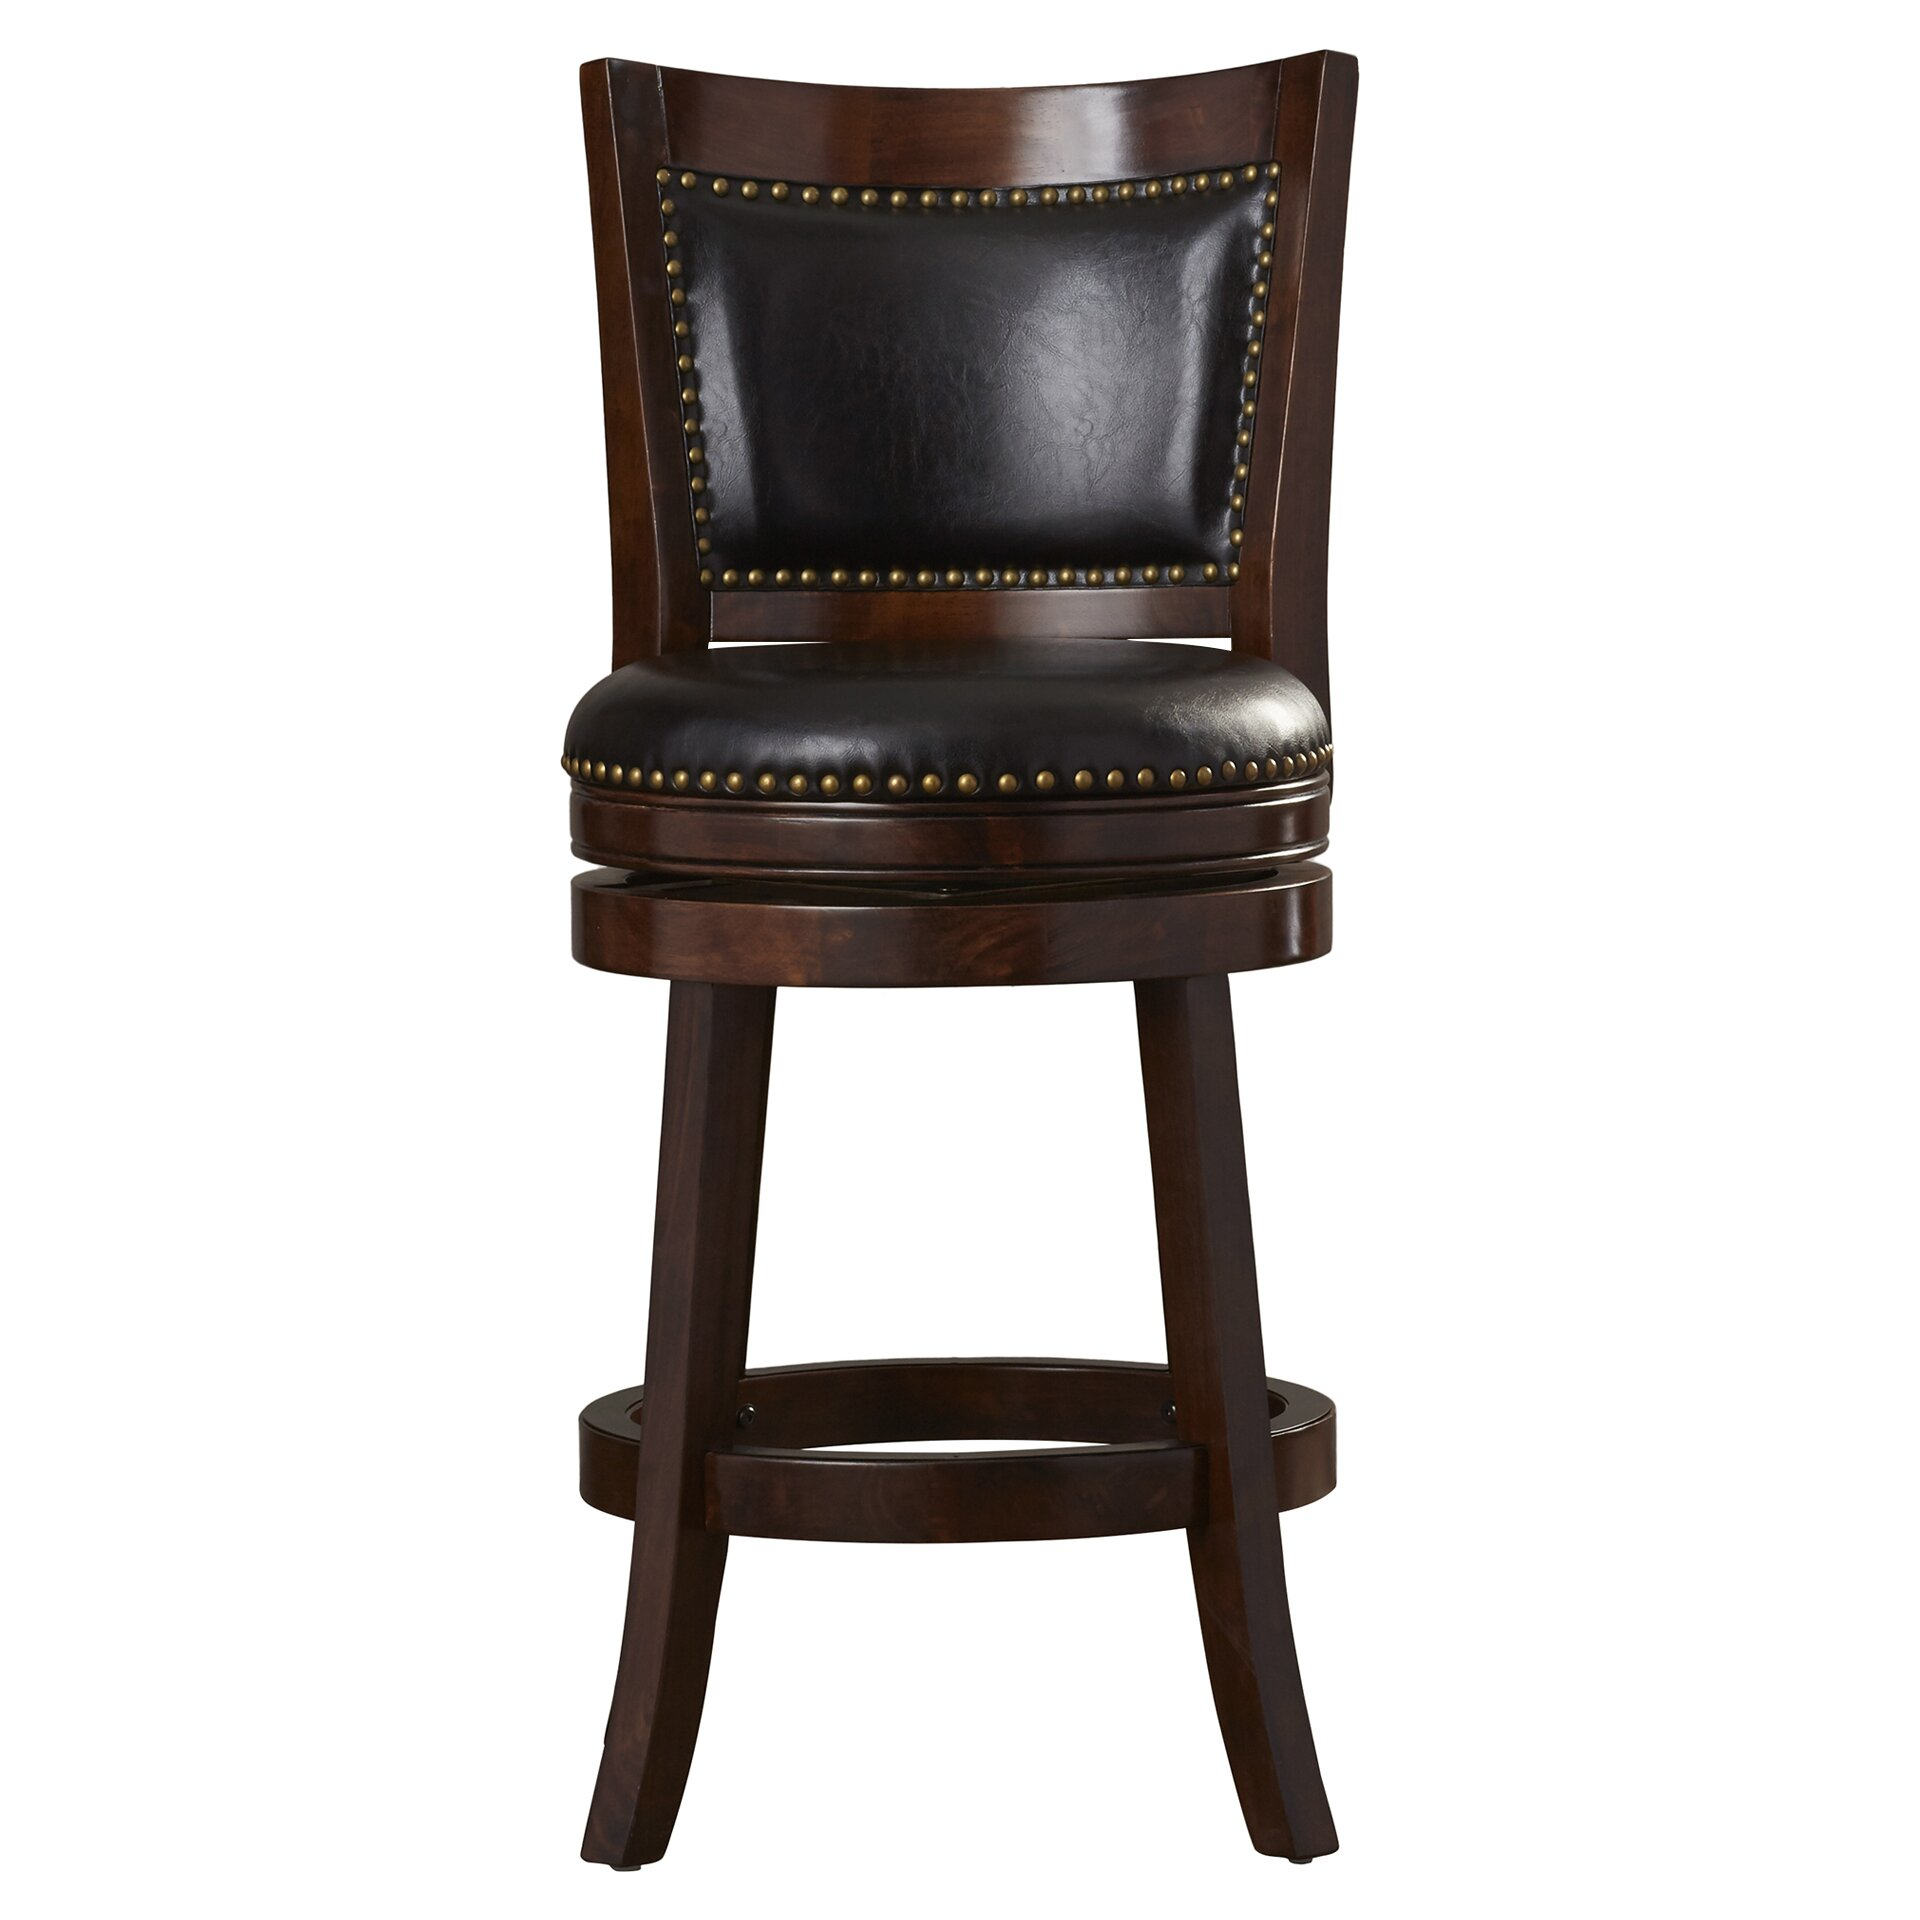 "Darby Home Co Carstensen 24"" Swivel Bar Stool & Reviews"